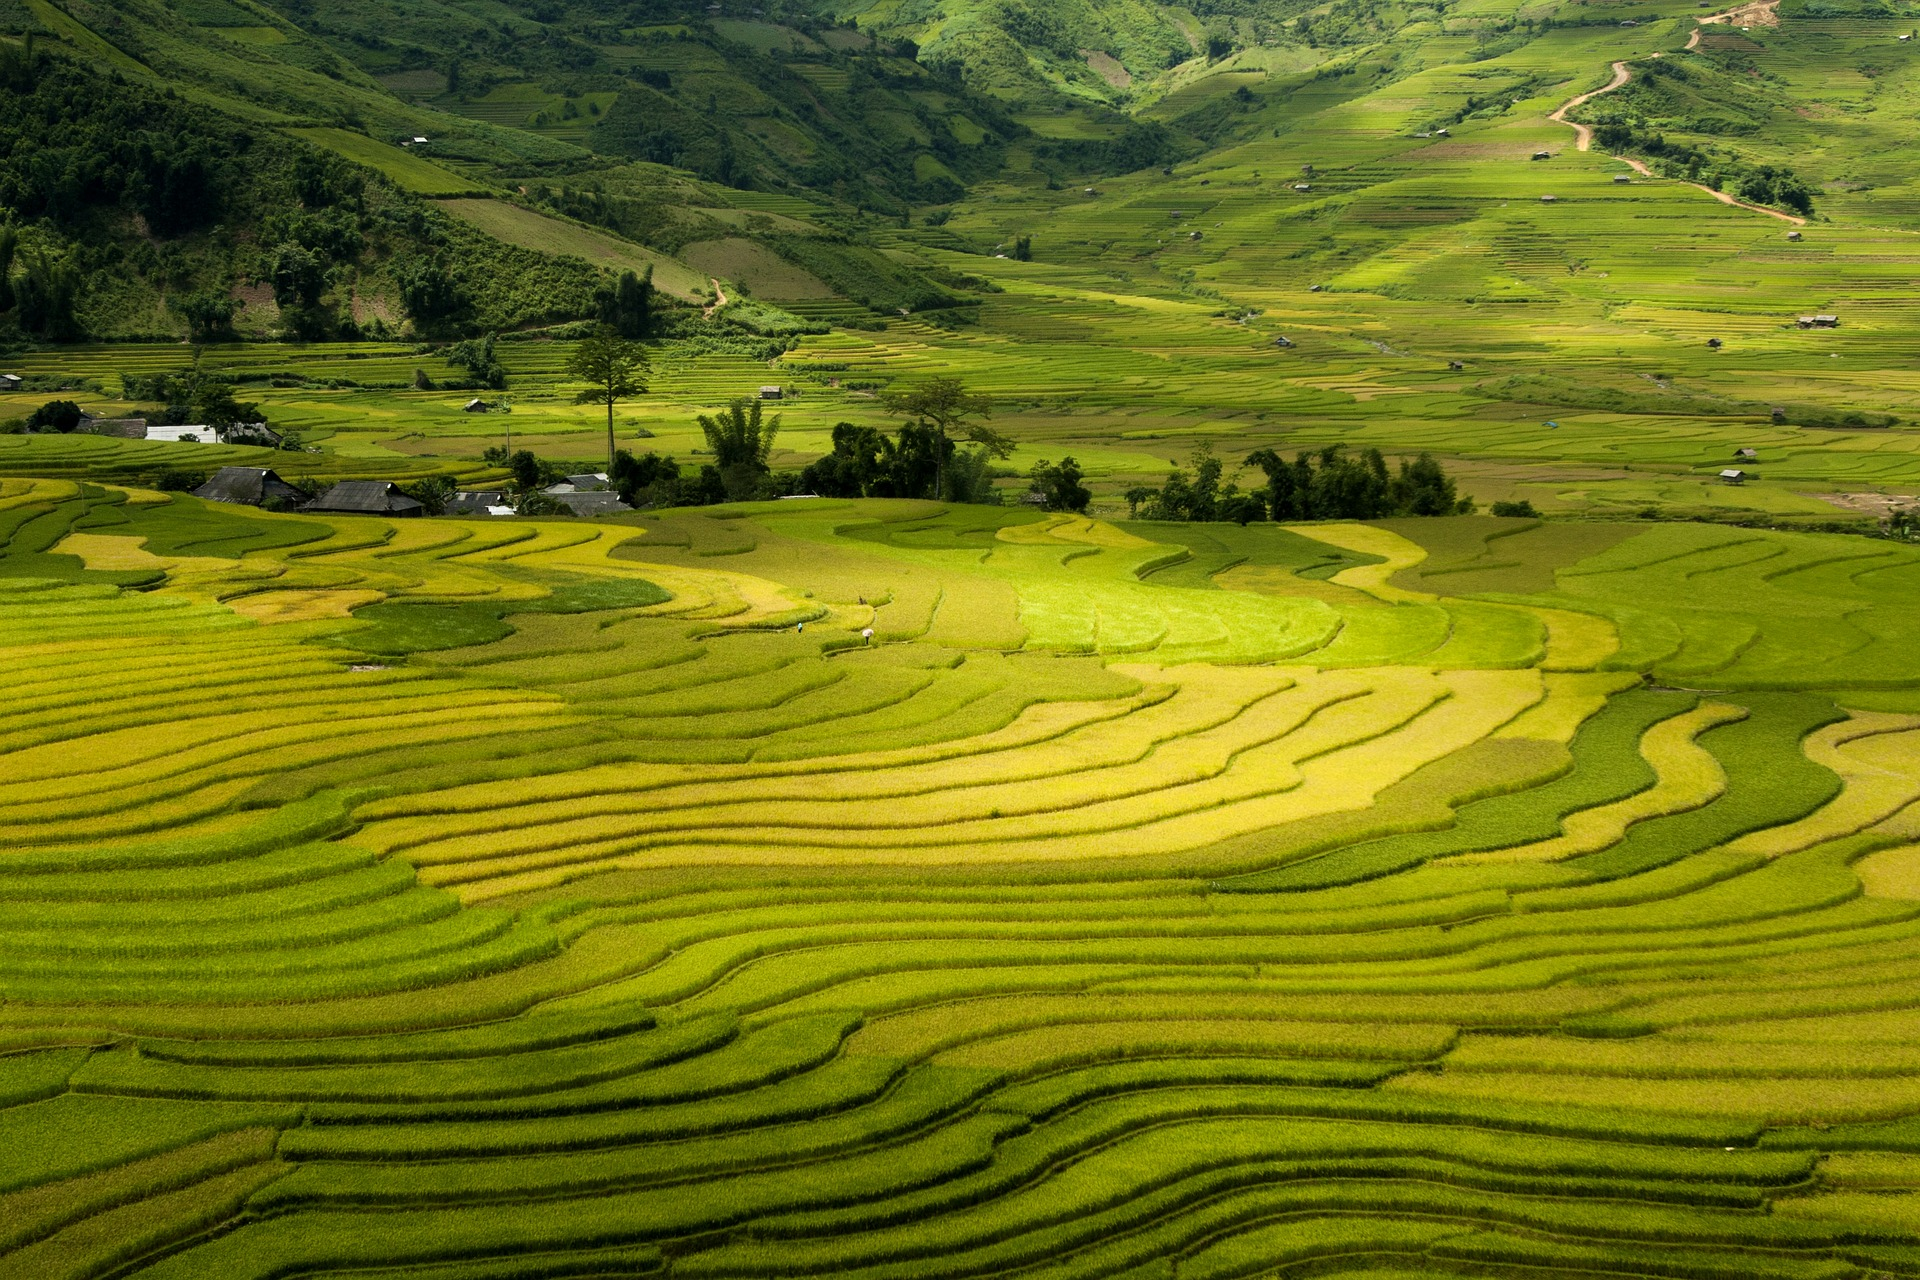 Sapa Rice Fields, Vietnam